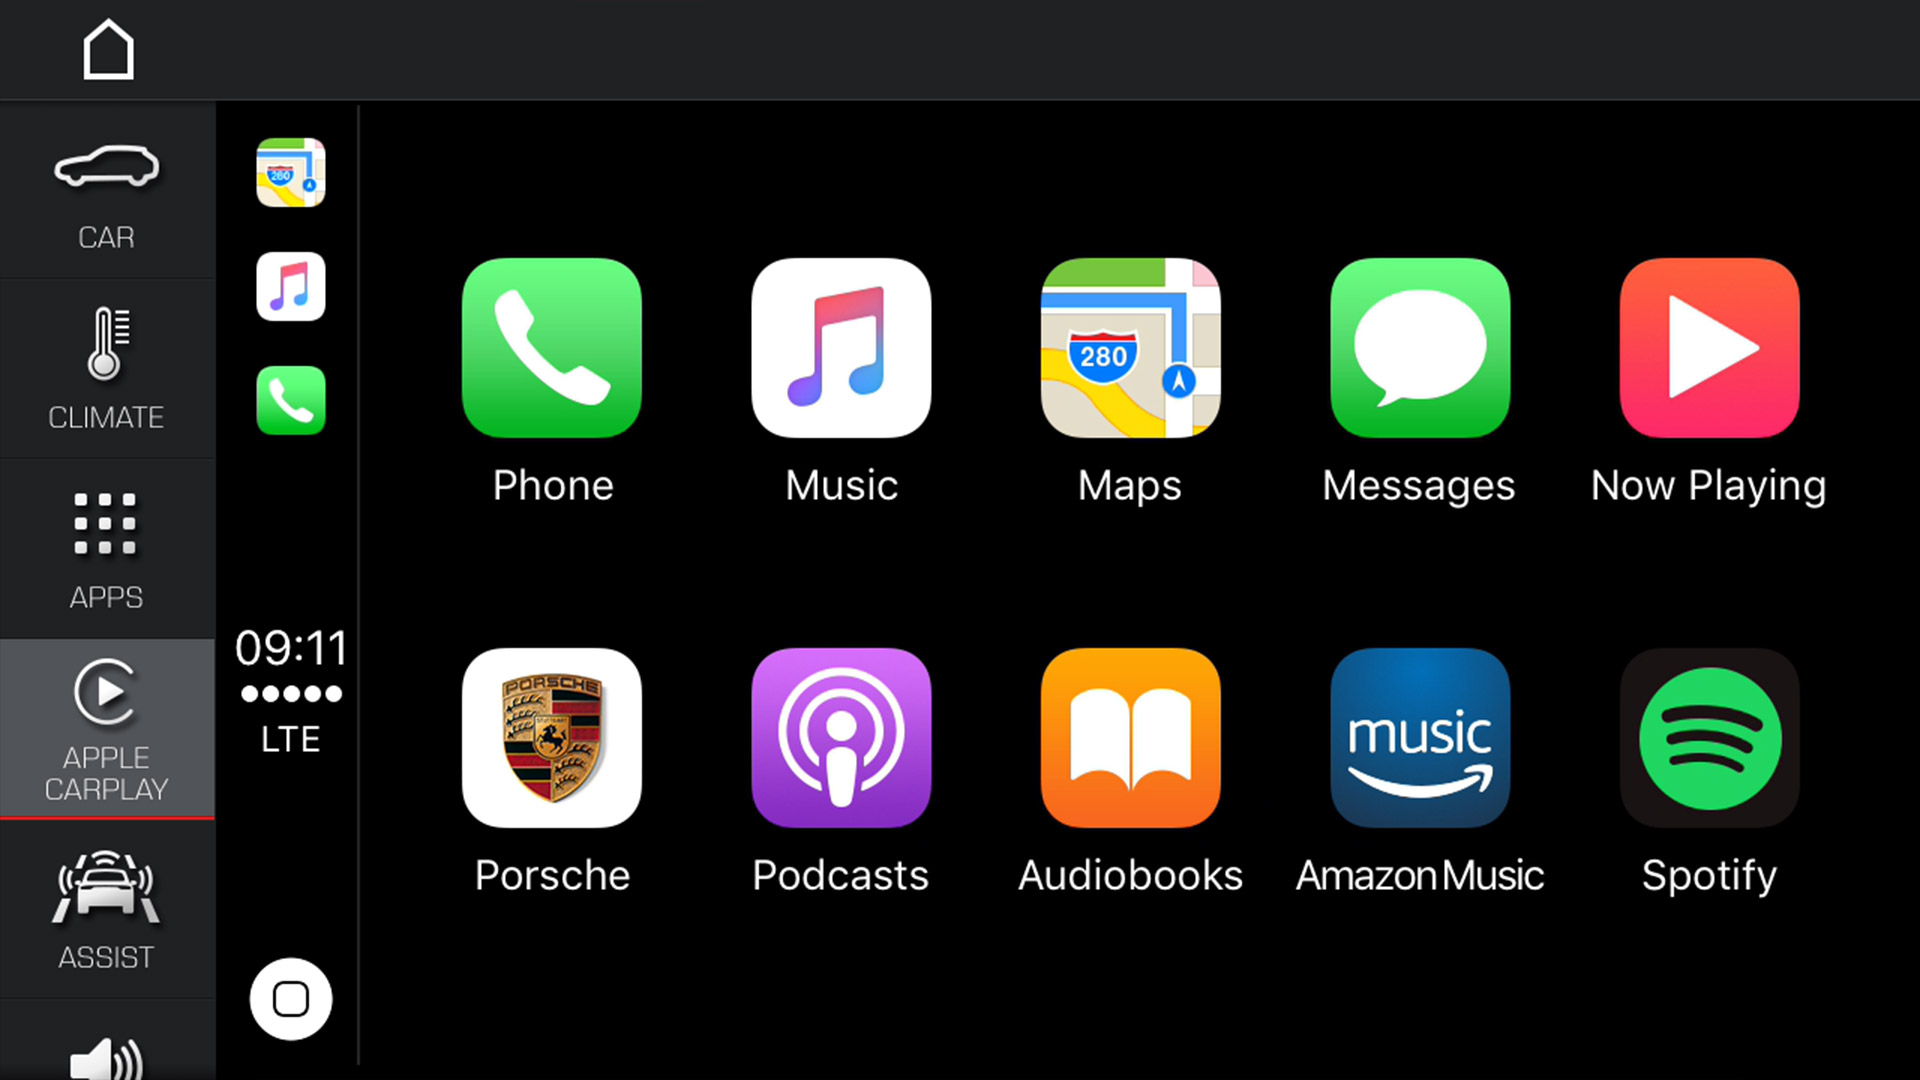 Porsche Cayenne - Apple® CarPlay